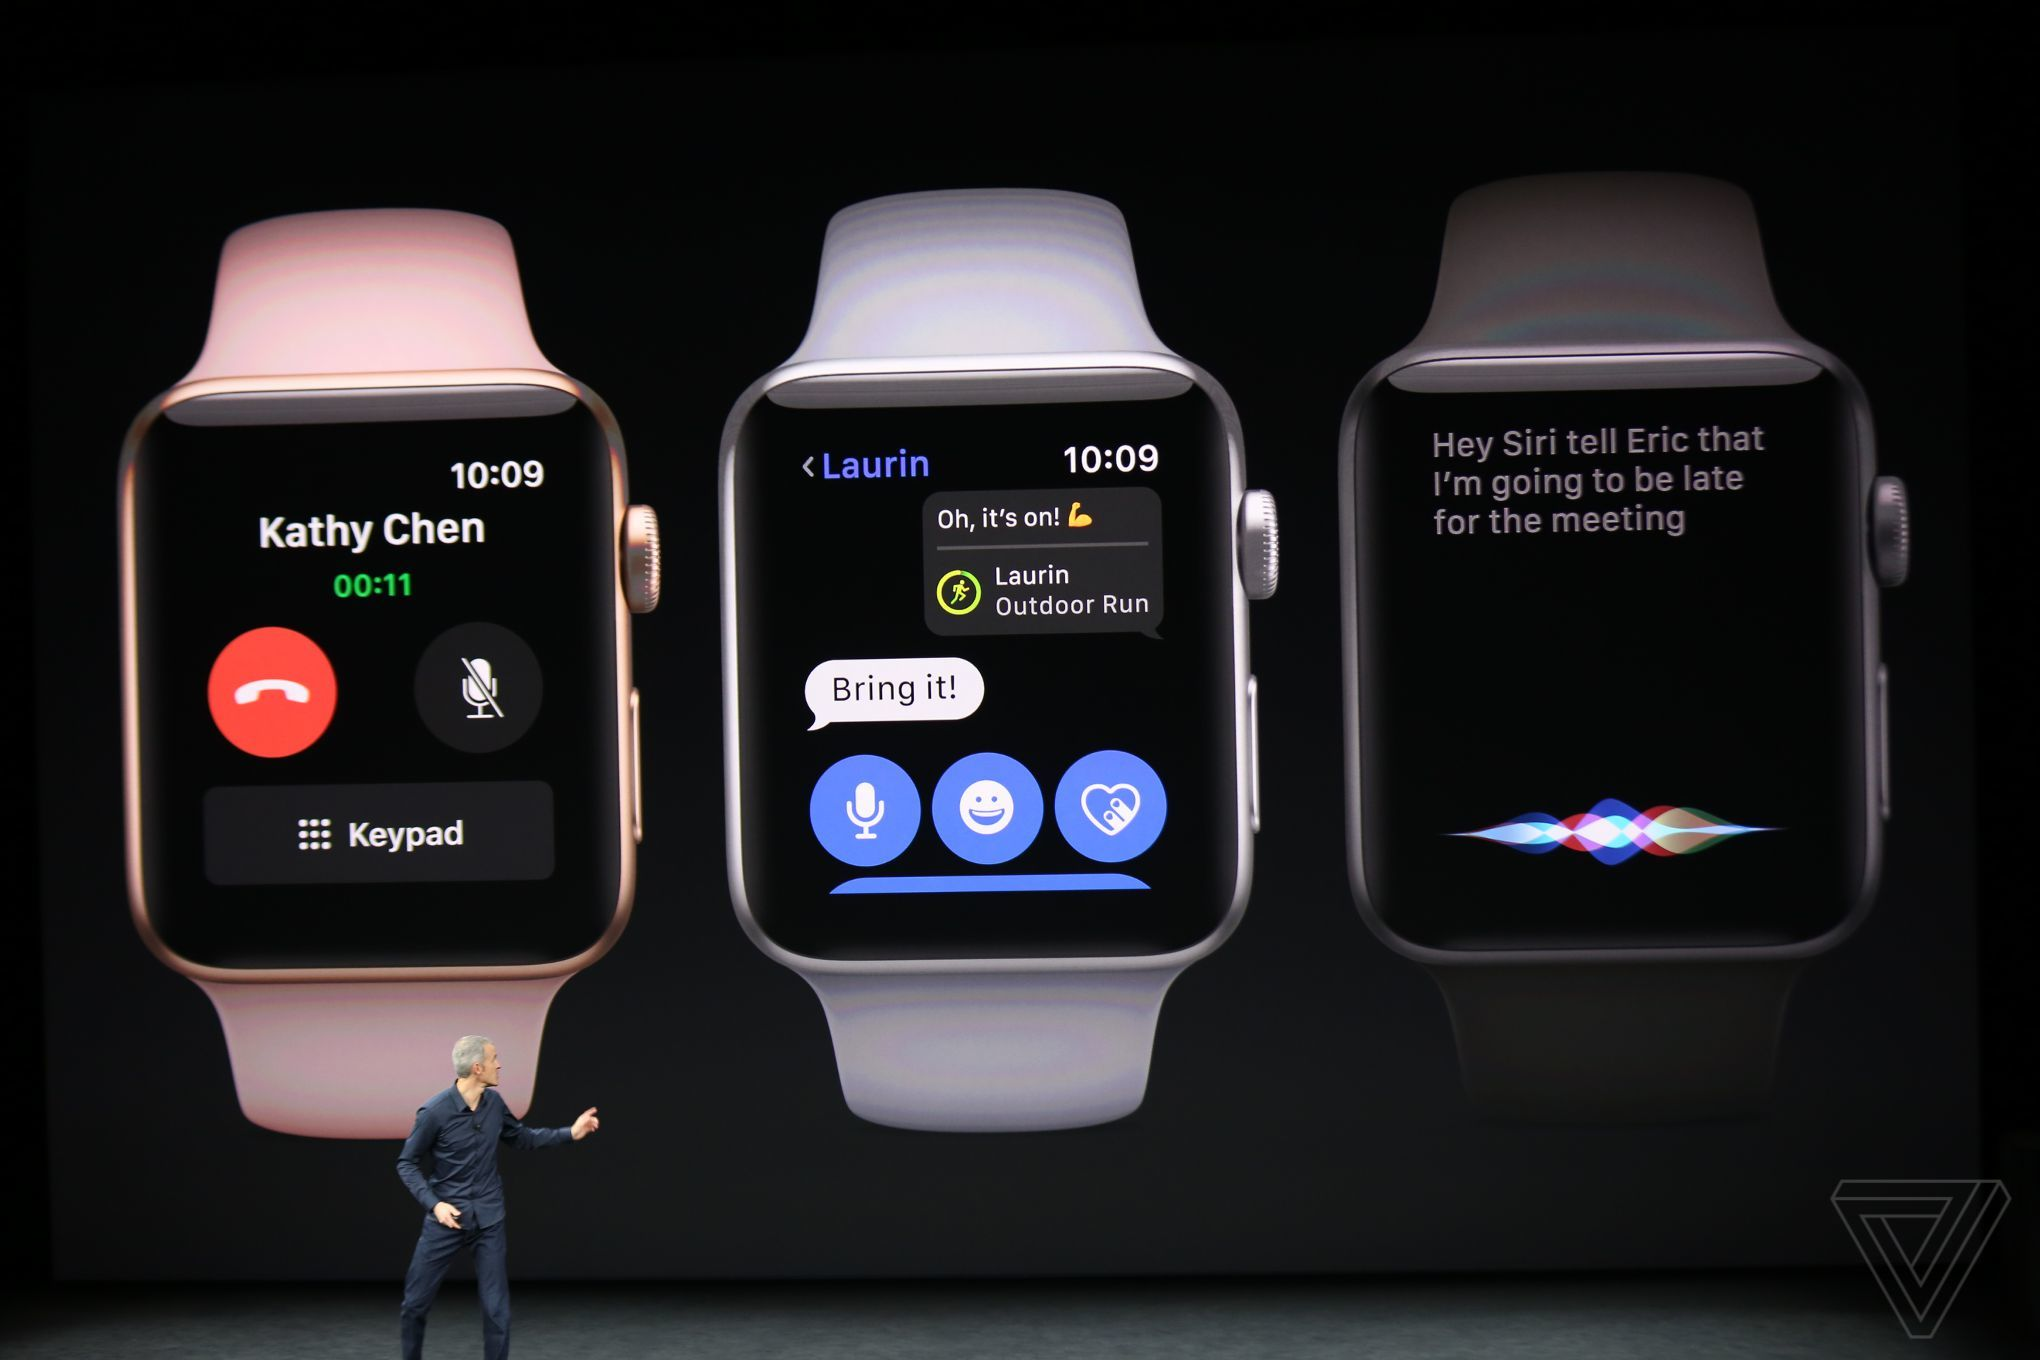 New Apple Watch Series 3 announced with LTE